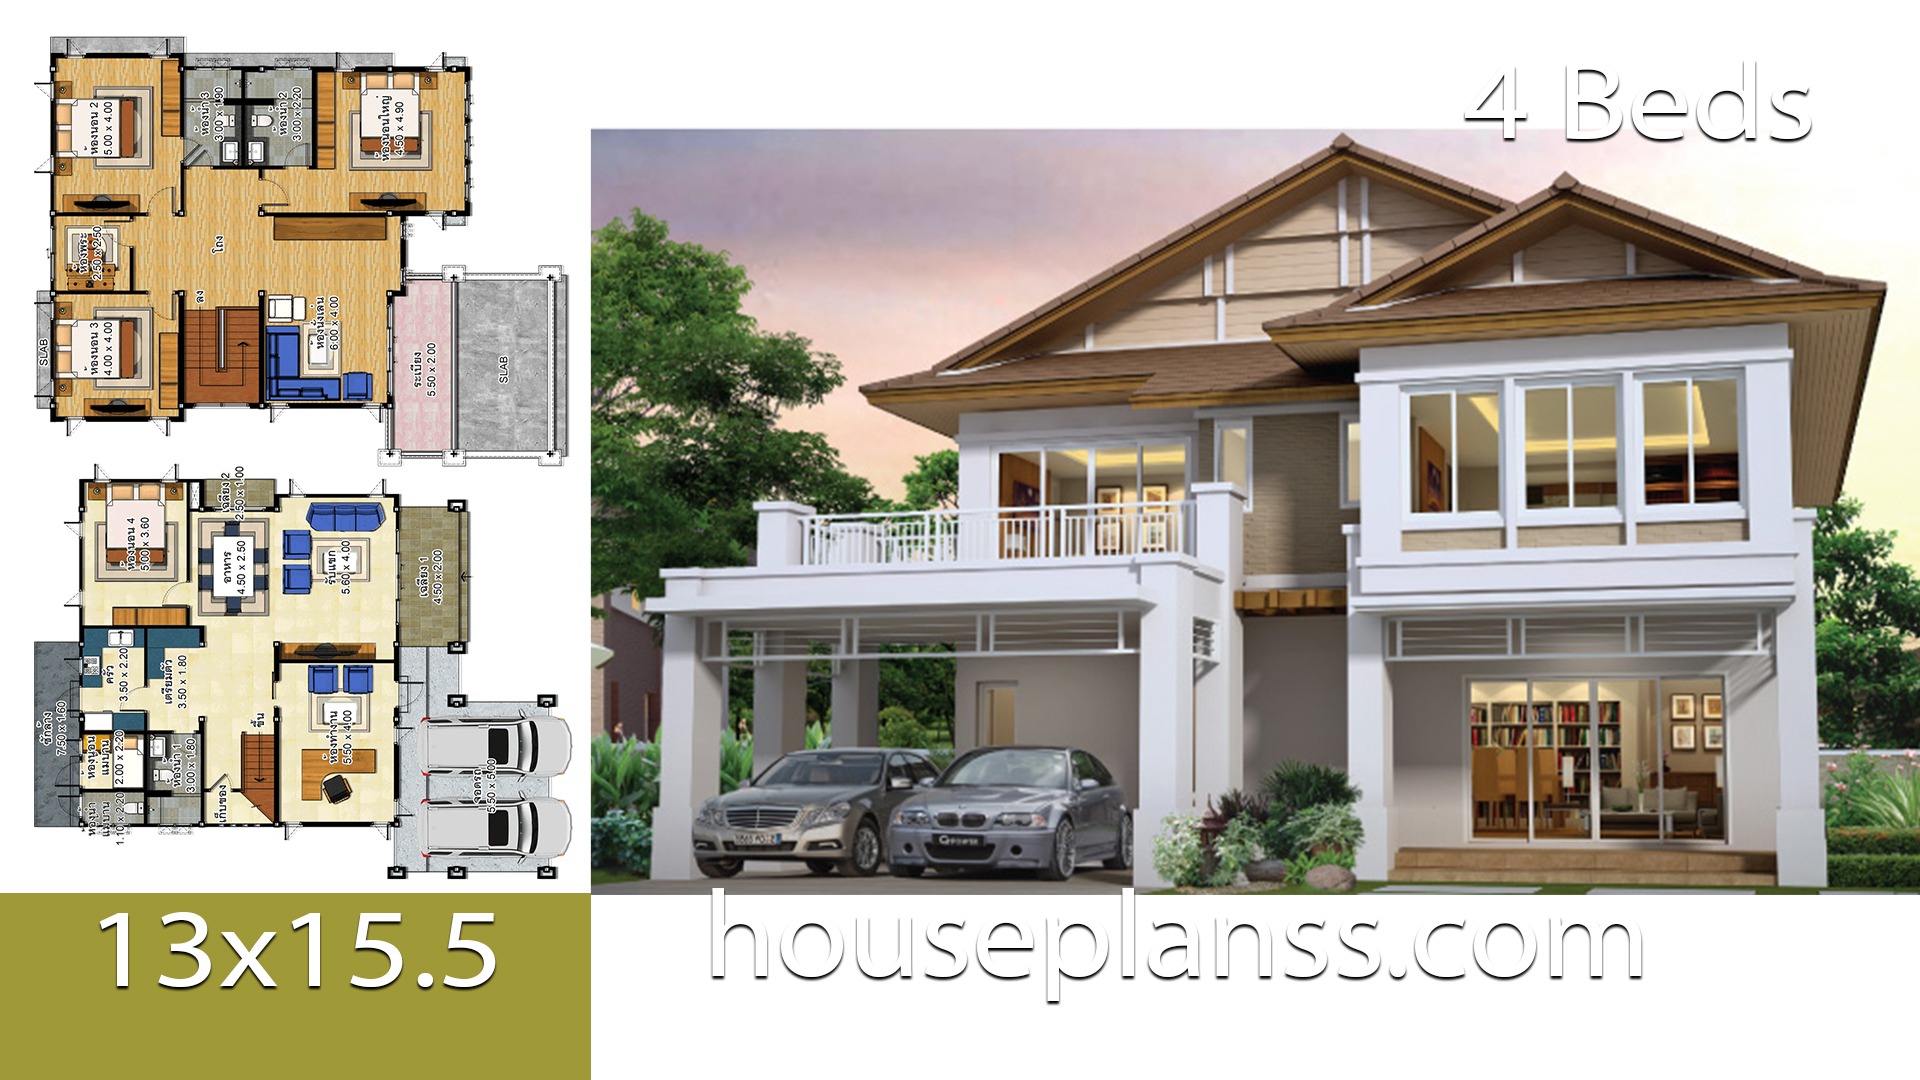 House design idea 13×15.5 with 4 bedrooms